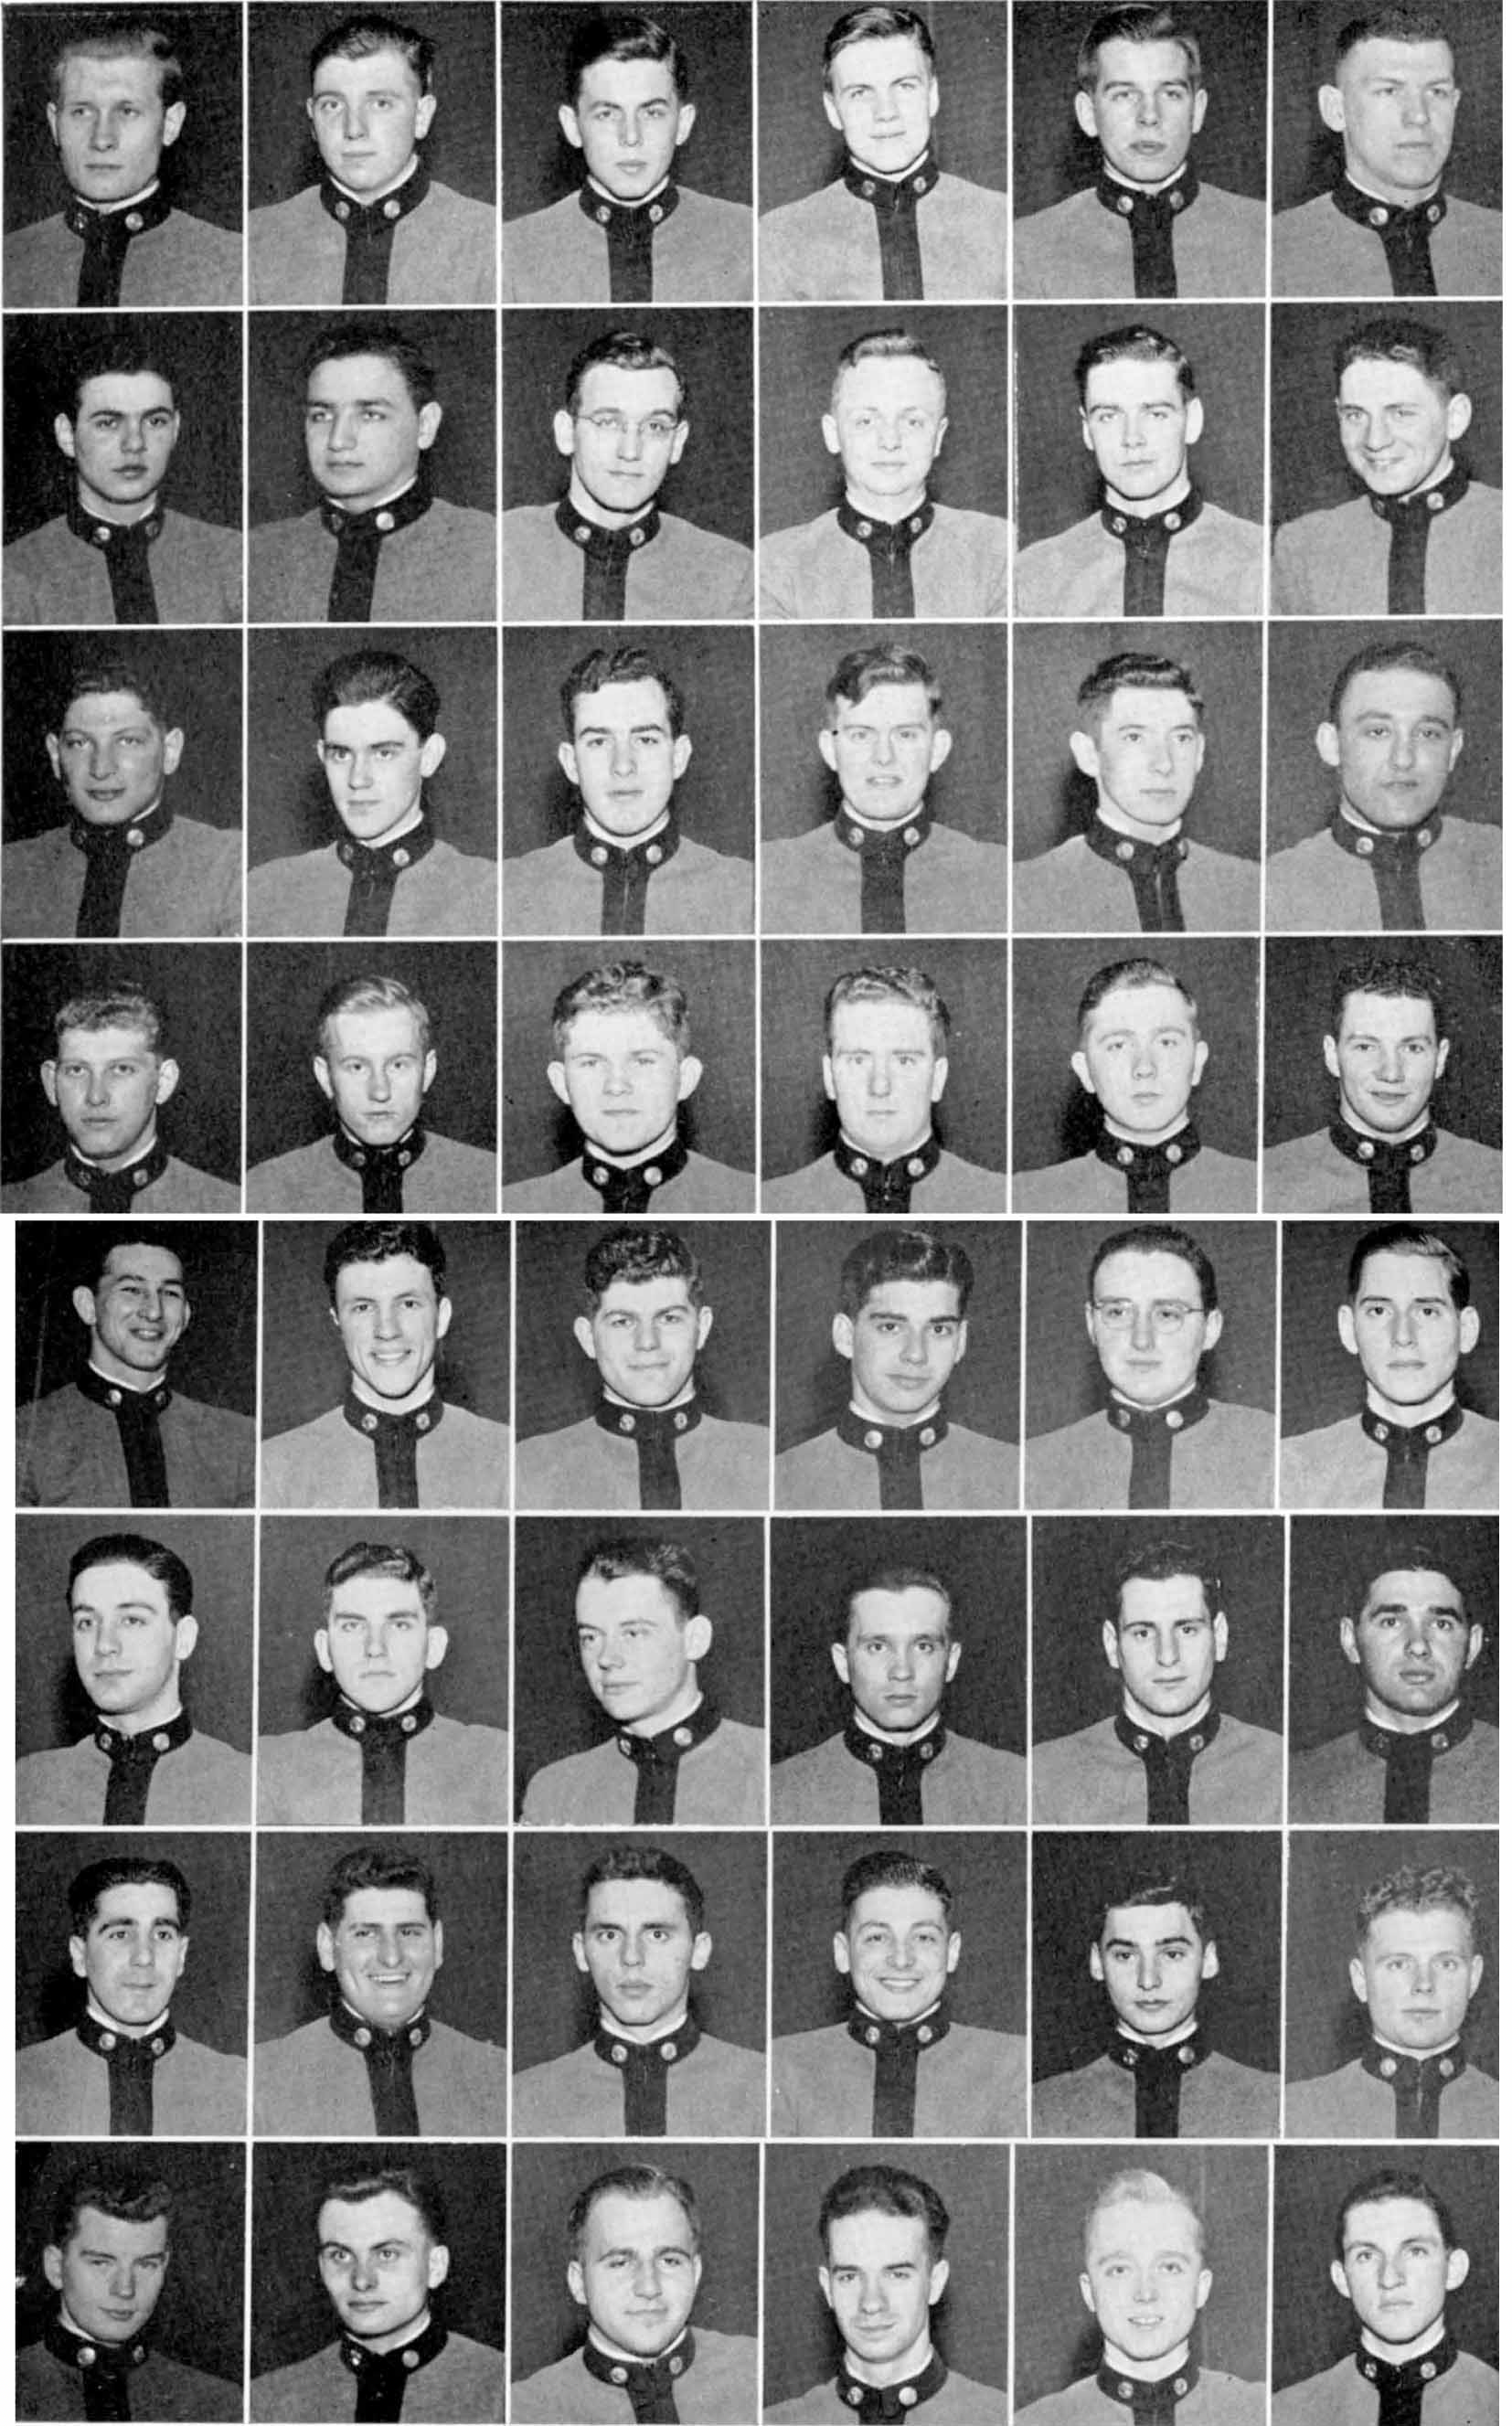 Pennsylvania Military College Class of 1943